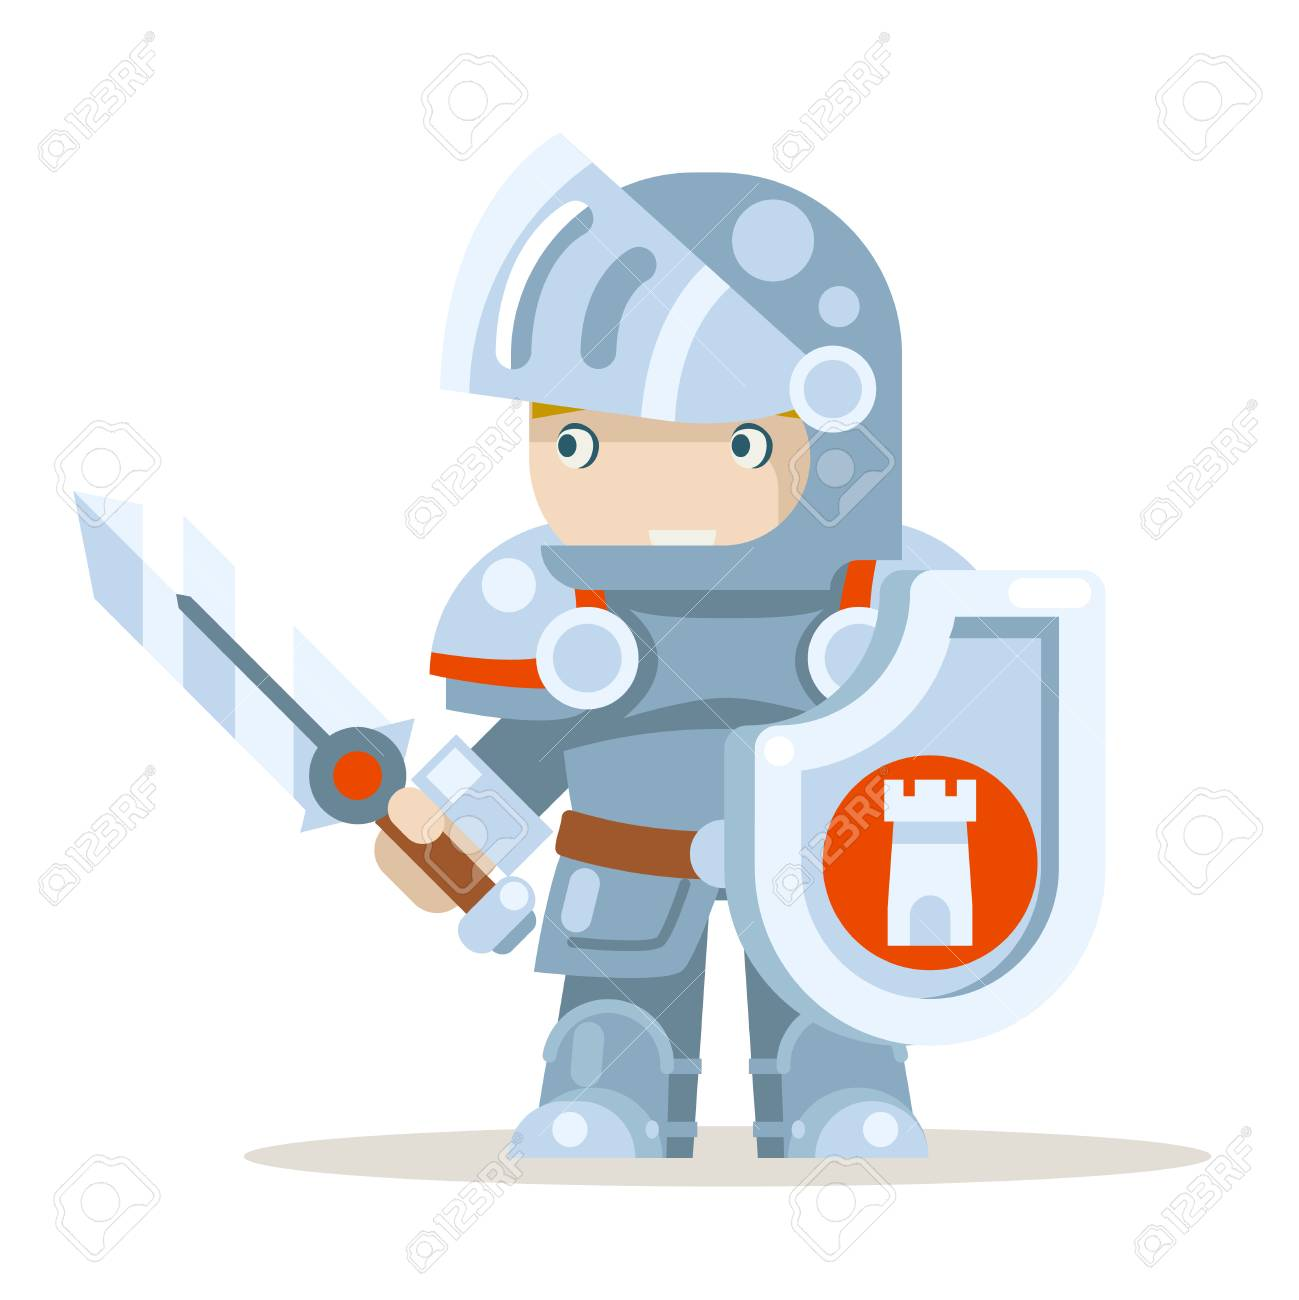 Knight warrior fantasy medieval action RPG game layered animation